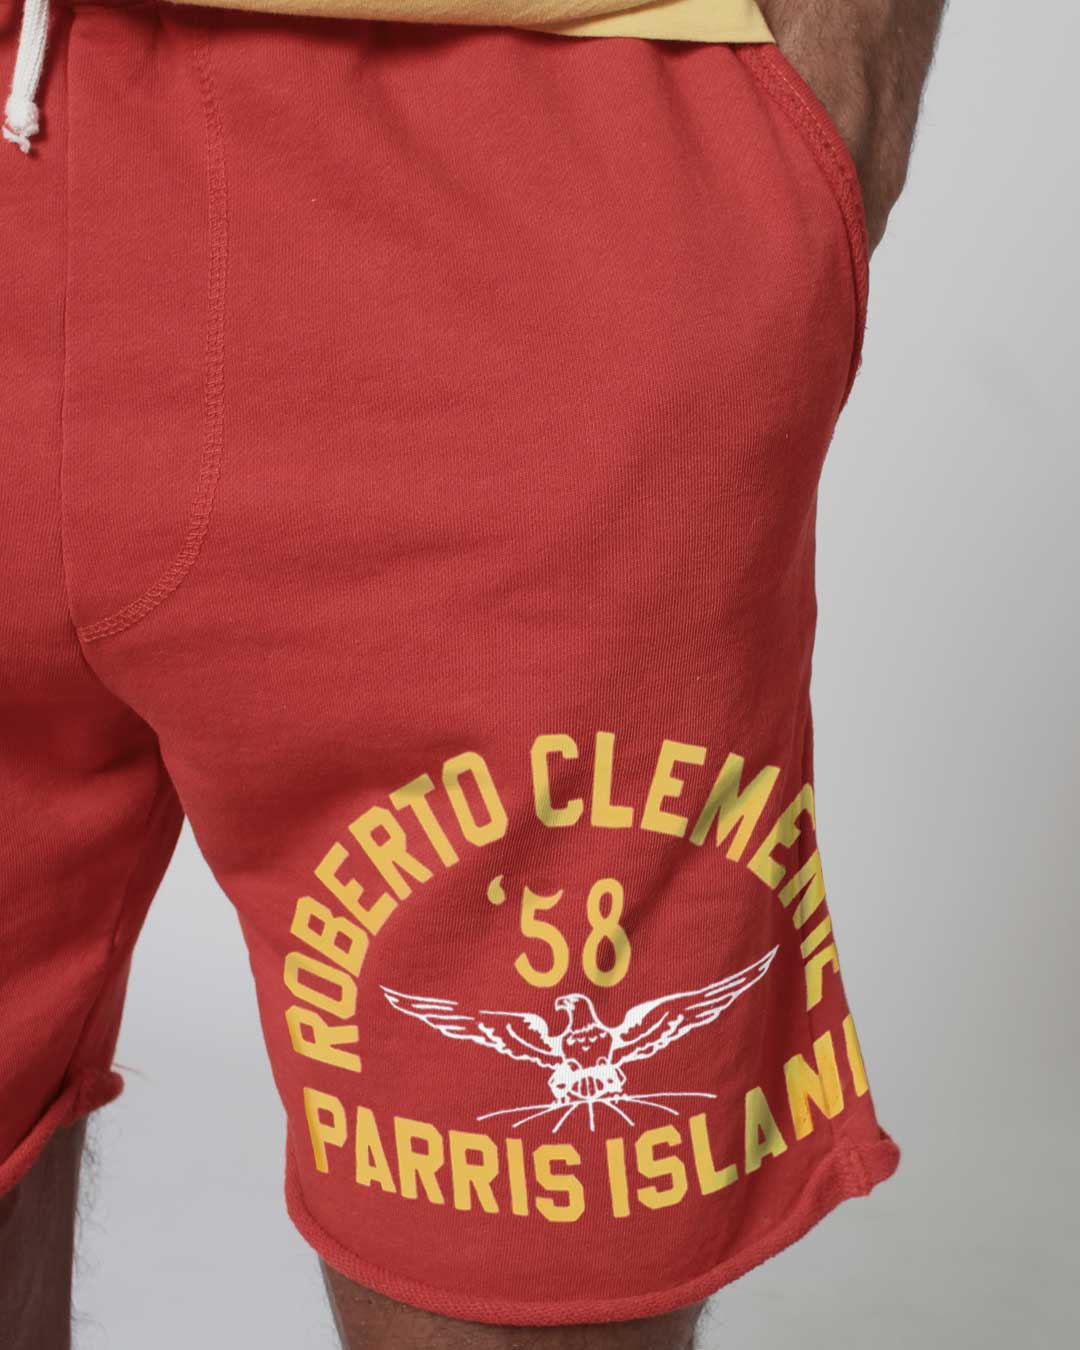 Roberto Clemente Parris Island Shorts - Roots of Inc dba Roots of Fight